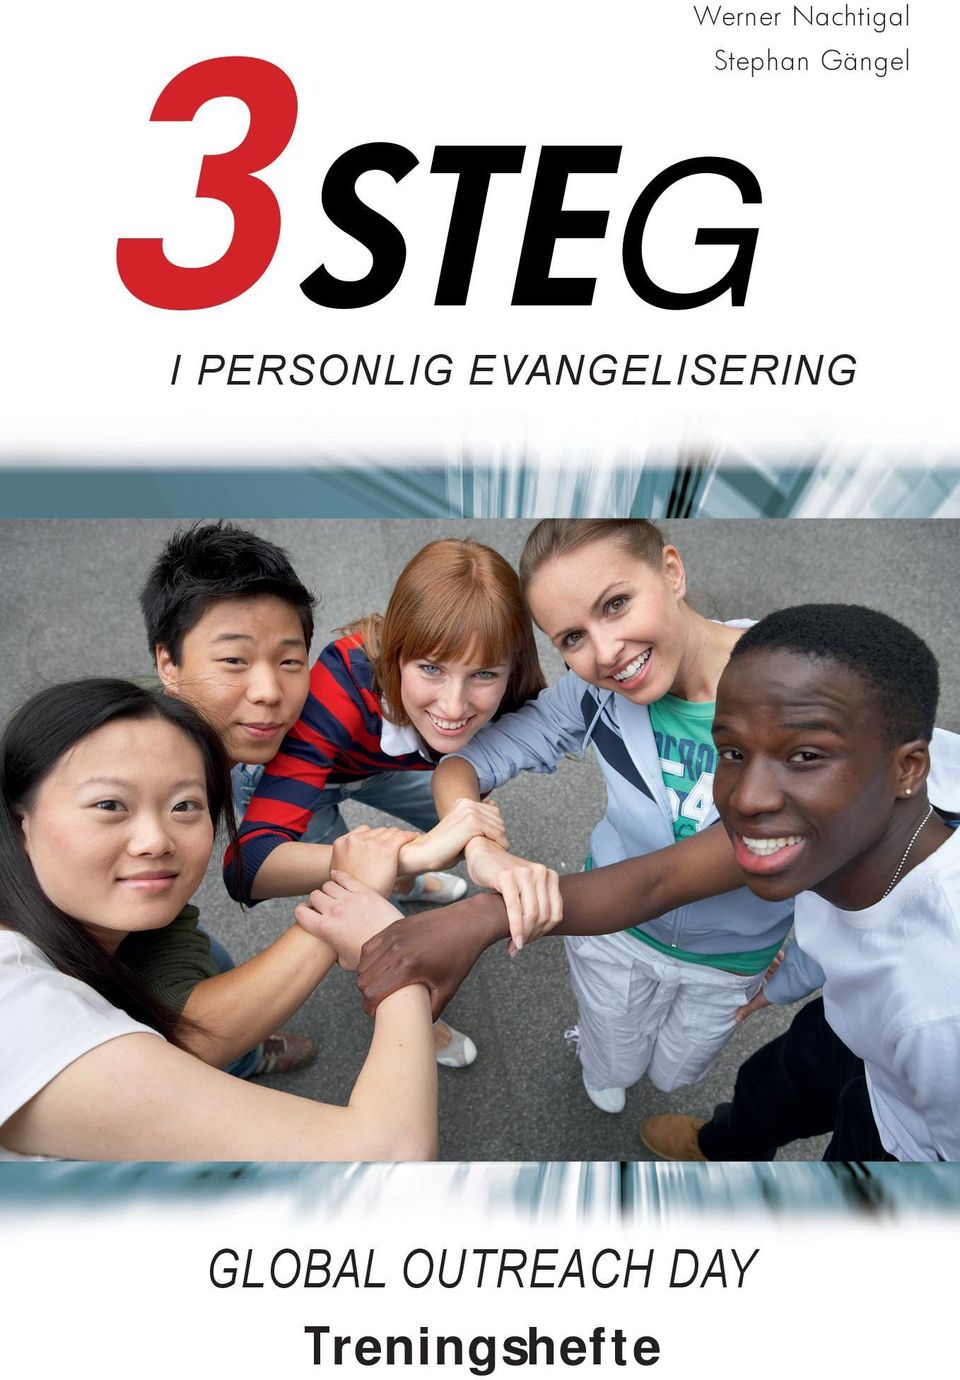 EVANGELISERING GLOBAL